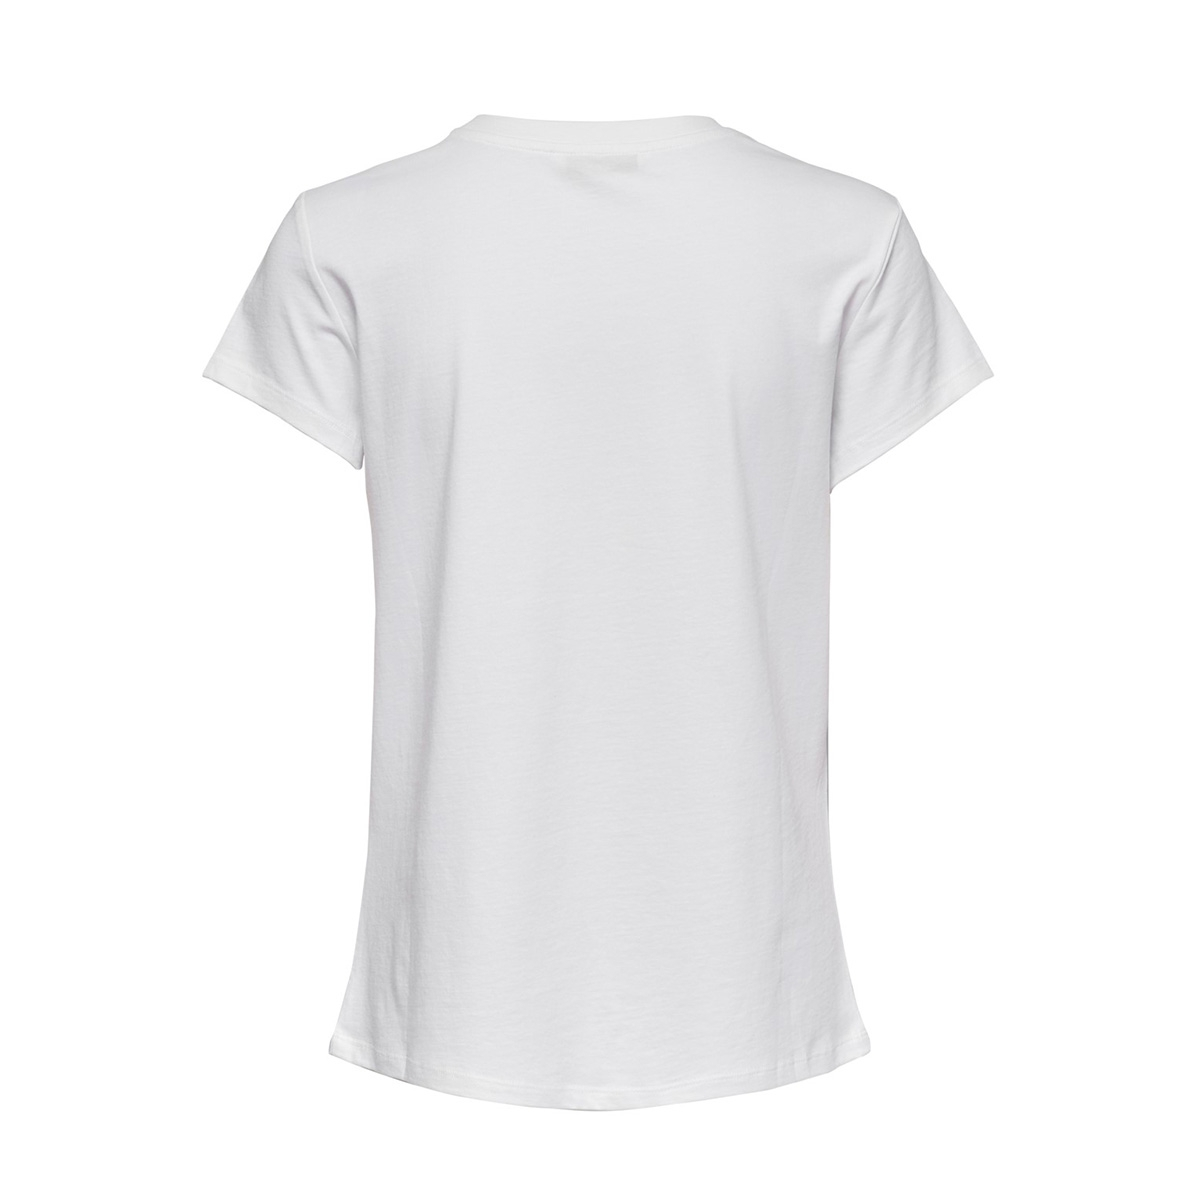 onlsally una s/s t-shirt jrs 15207951 only t-shirt white/lips